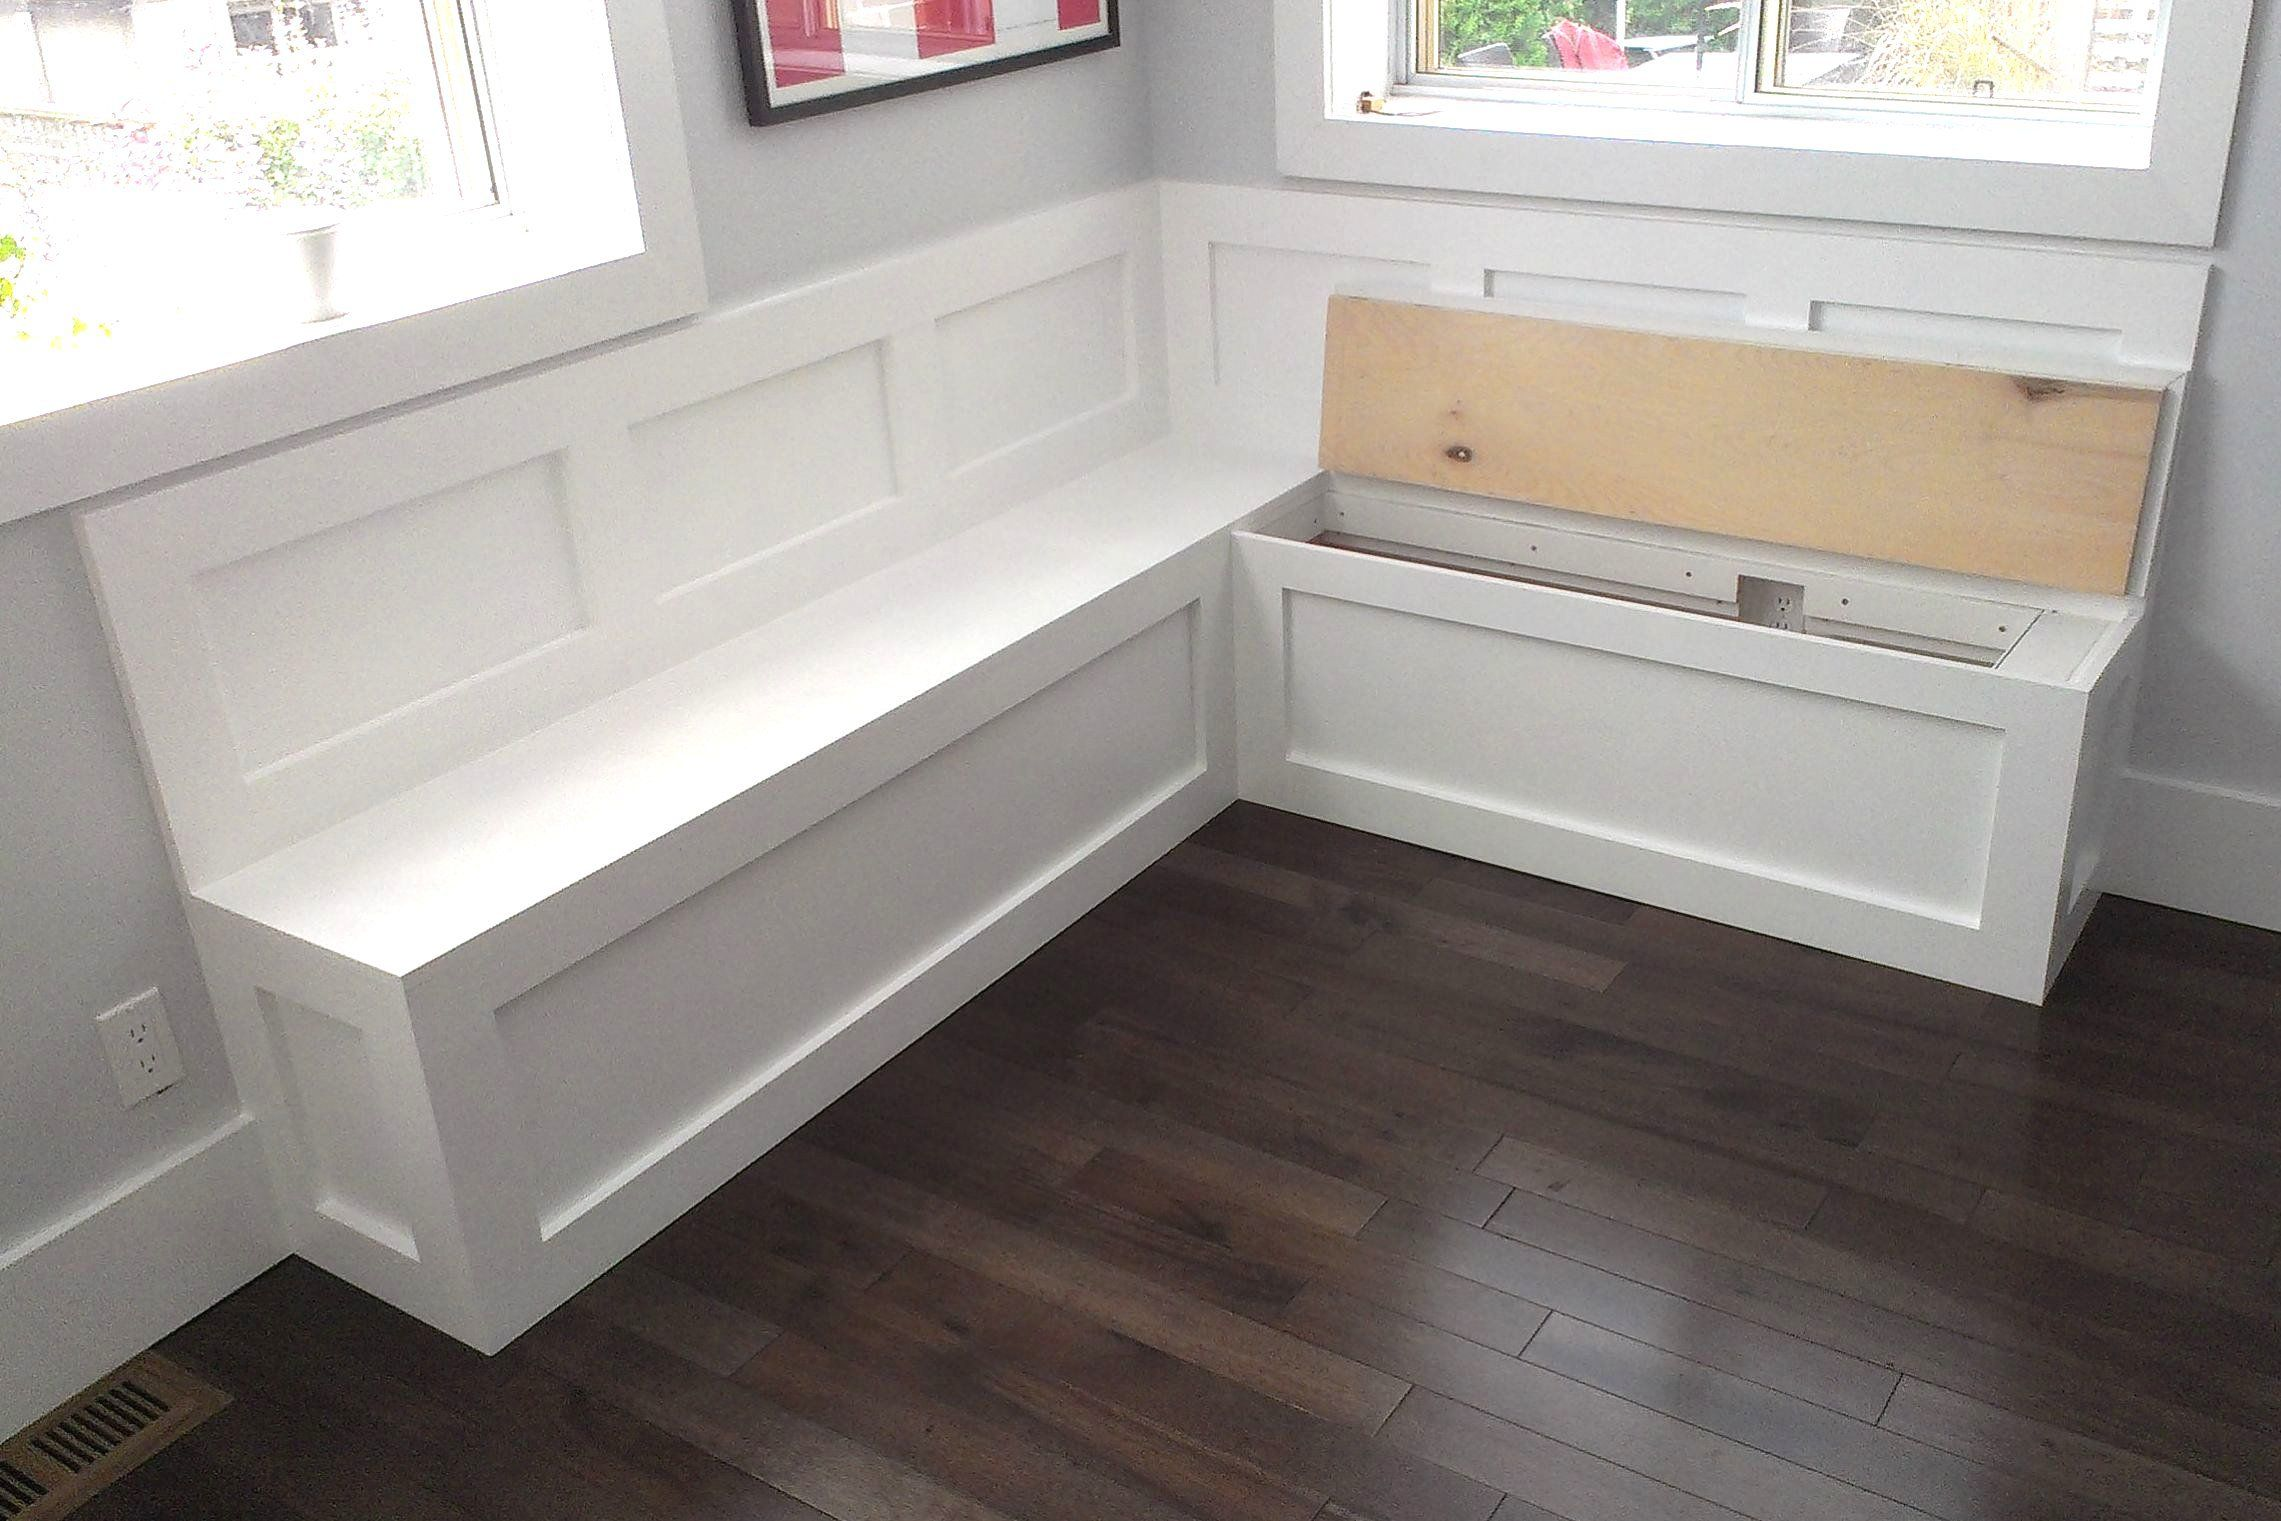 Tom Howley Bench Seat With Storage Draws | Banquettes | Pinterest | Bench  Seat, Toms And Storage